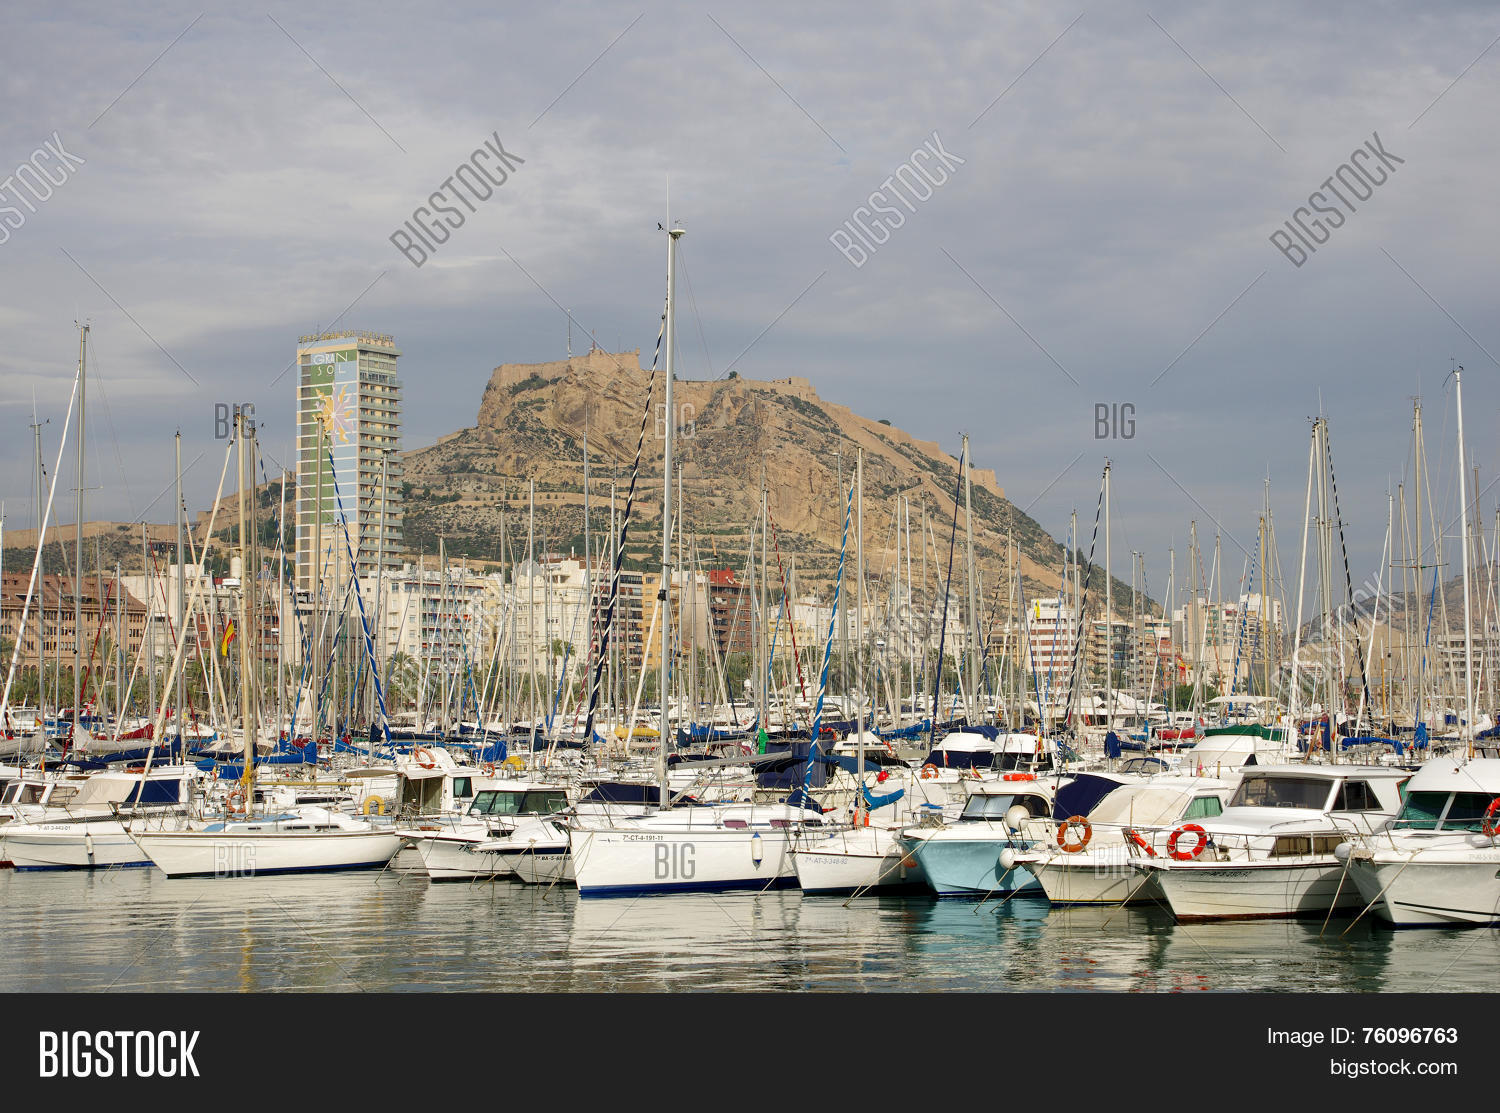 alicante harbor image photo